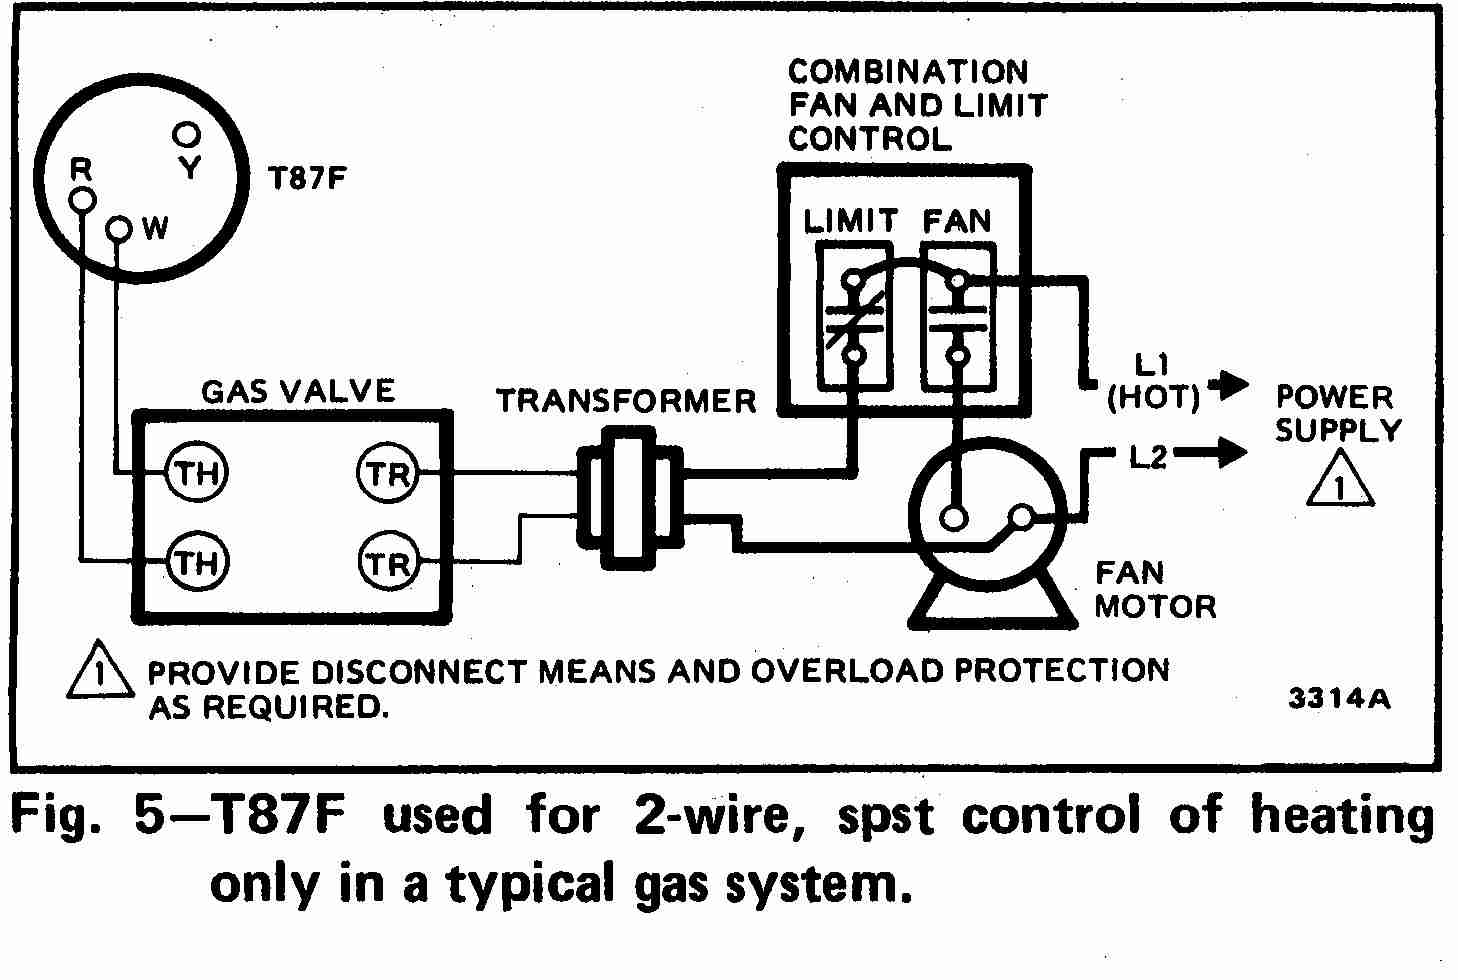 TT_T87F_0002_2Wg_DJF room thermostat wiring diagrams for hvac systems white rodgers 3 wire zone valve wiring diagram at webbmarketing.co